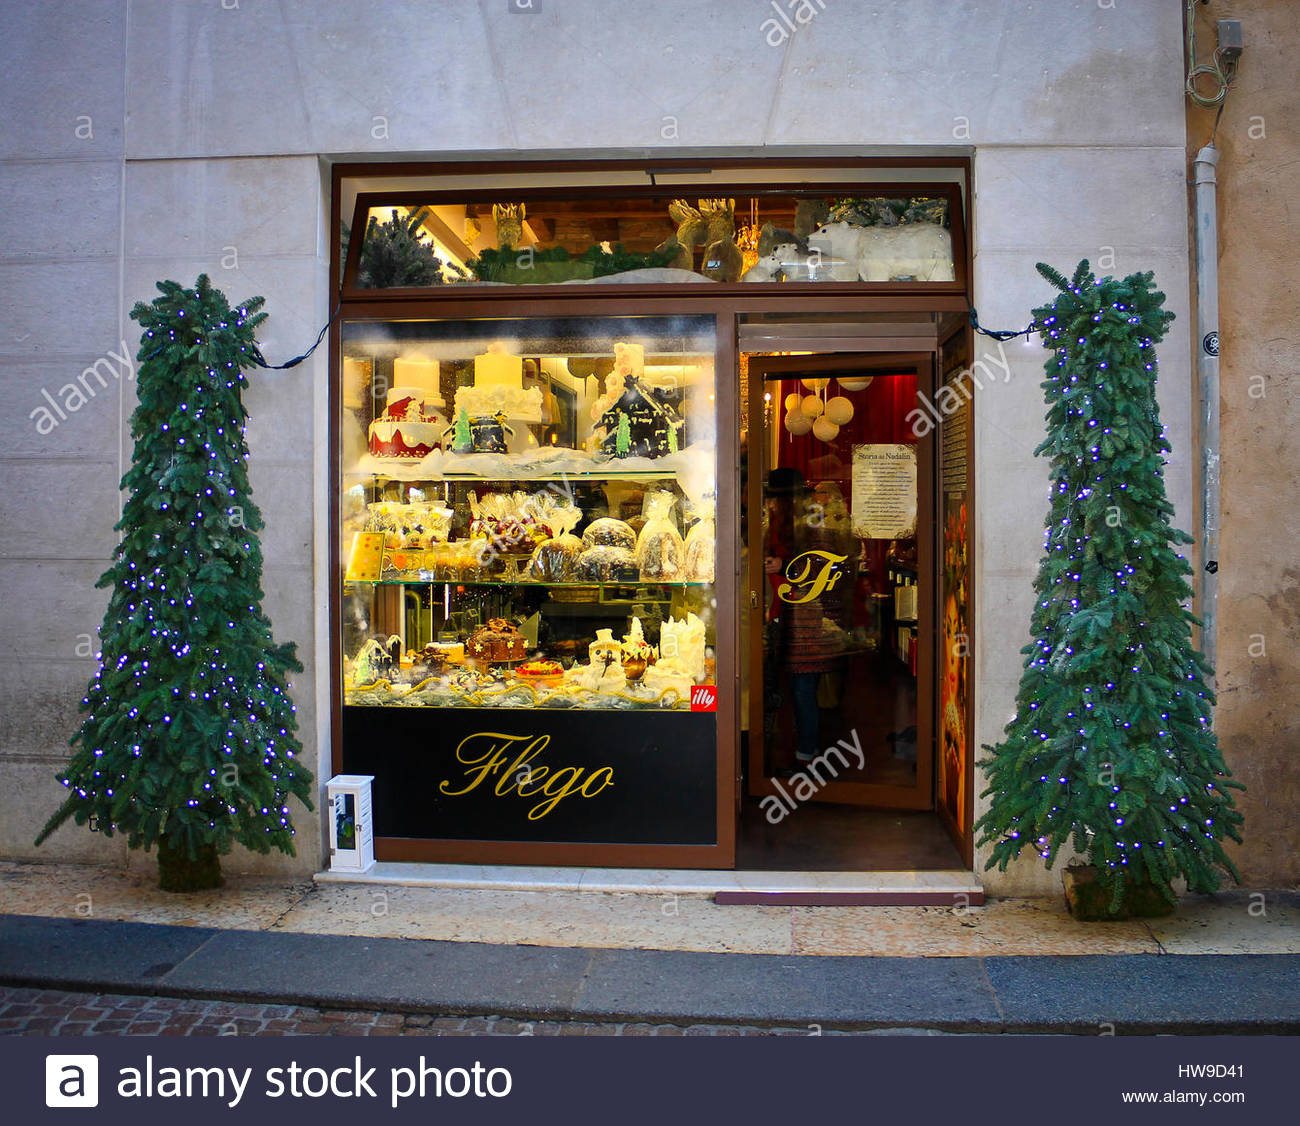 Traditional Christmas cakes in small shop window  decorative trees outside    Verona  Italy. Traditional Christmas cakes in small shop window  decorative trees